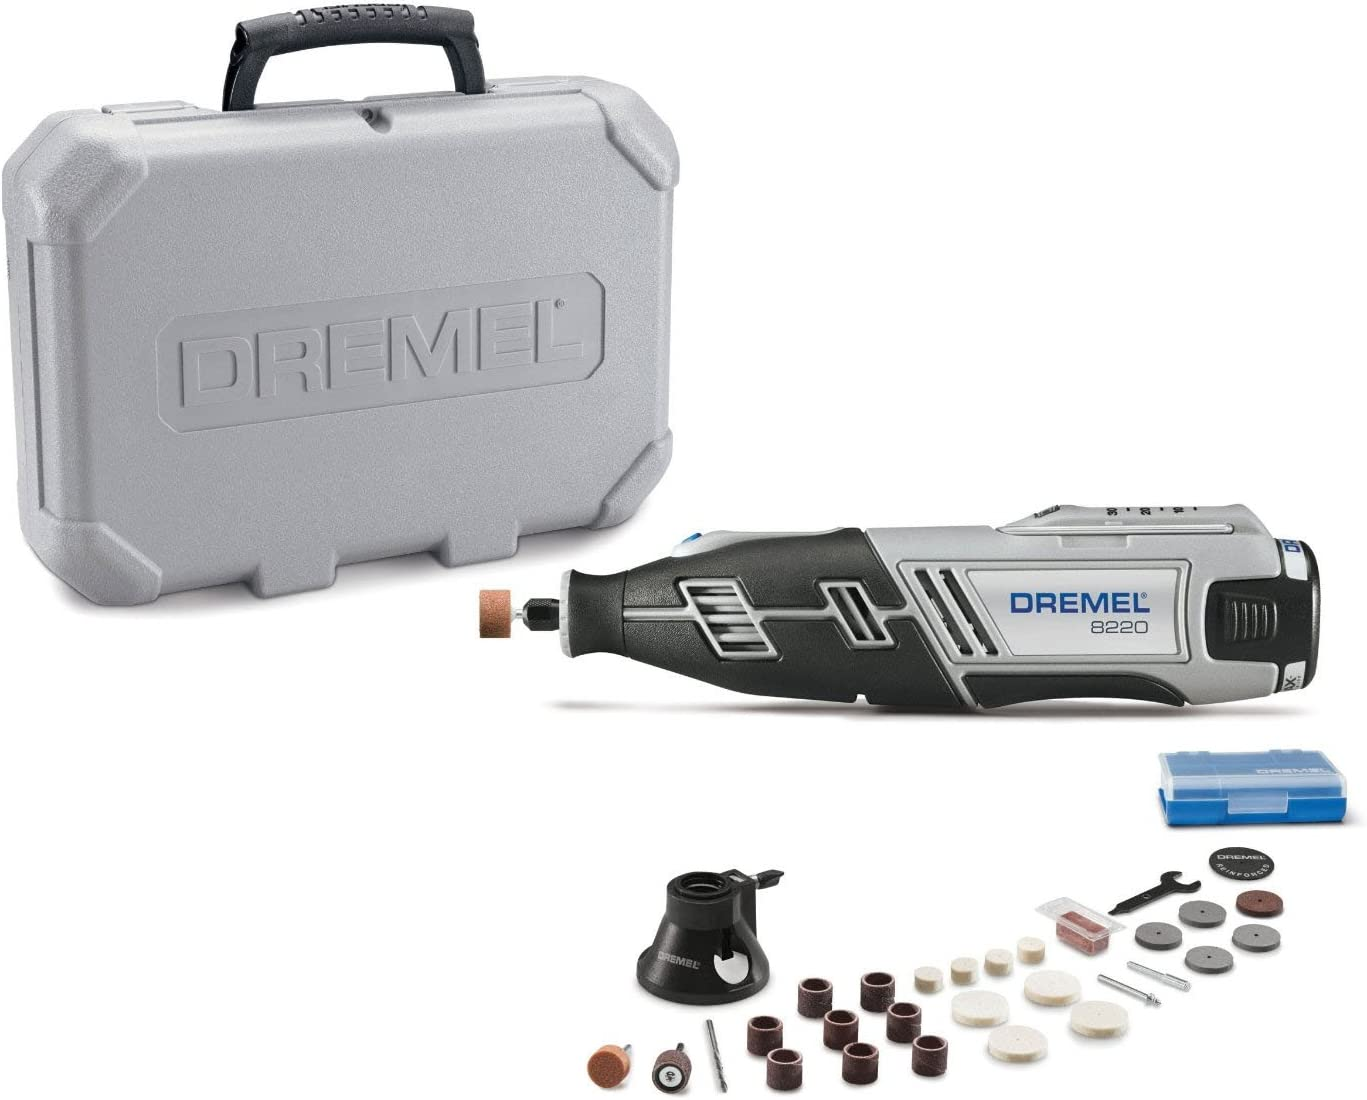 Dremel 8220-1/28 12-Volt Max Cordless Rotary Tool Kit- Engraver, Sander, and Polisher- Perfect for Cutting, Wood Carving, Engraving, Polishing, and Detail Sanding- 1 Attachment & 28 Accessories - Power Rotary Tools -